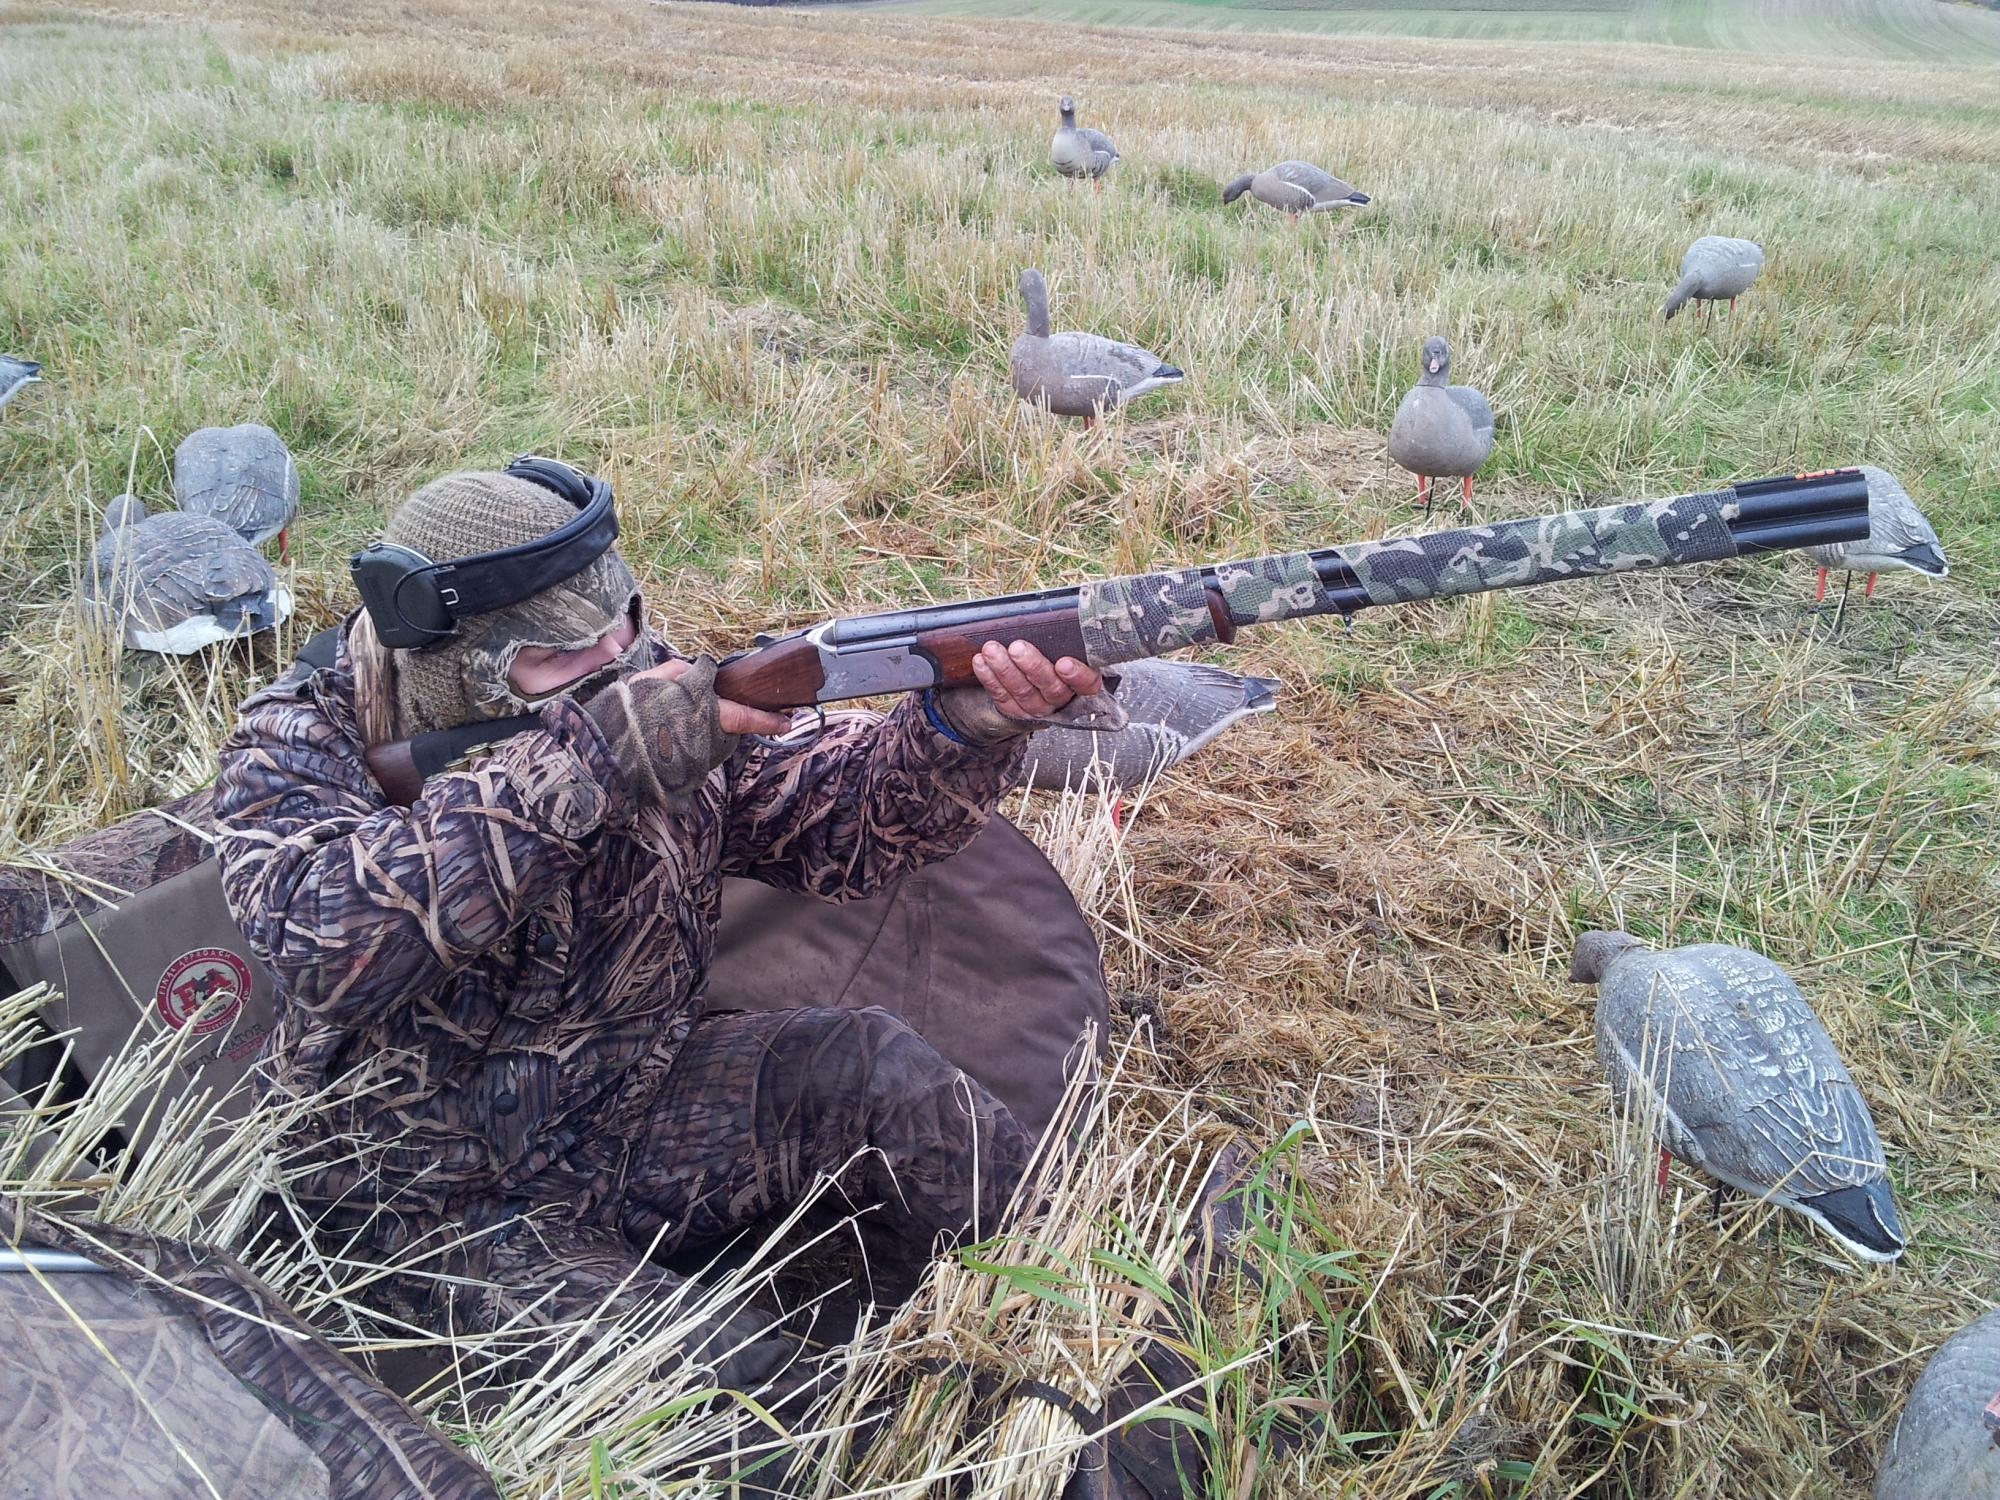 Pink-footed goose hunter, Norway. Photo by: Ove Martin Gundersen